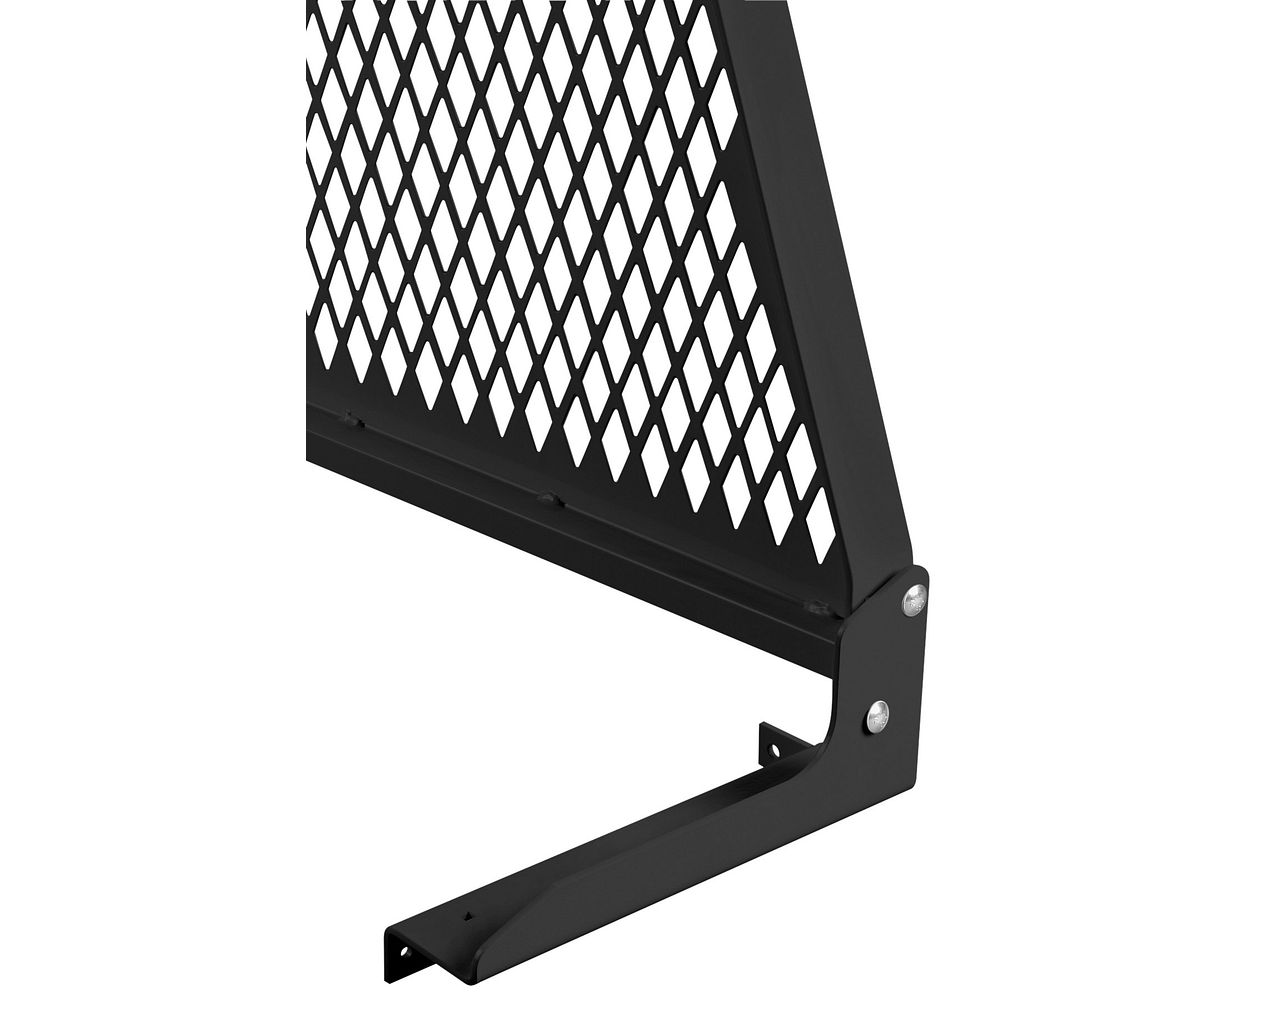 Weather Guard 1912-5-01 Cab Protector Mounting Kit, Black